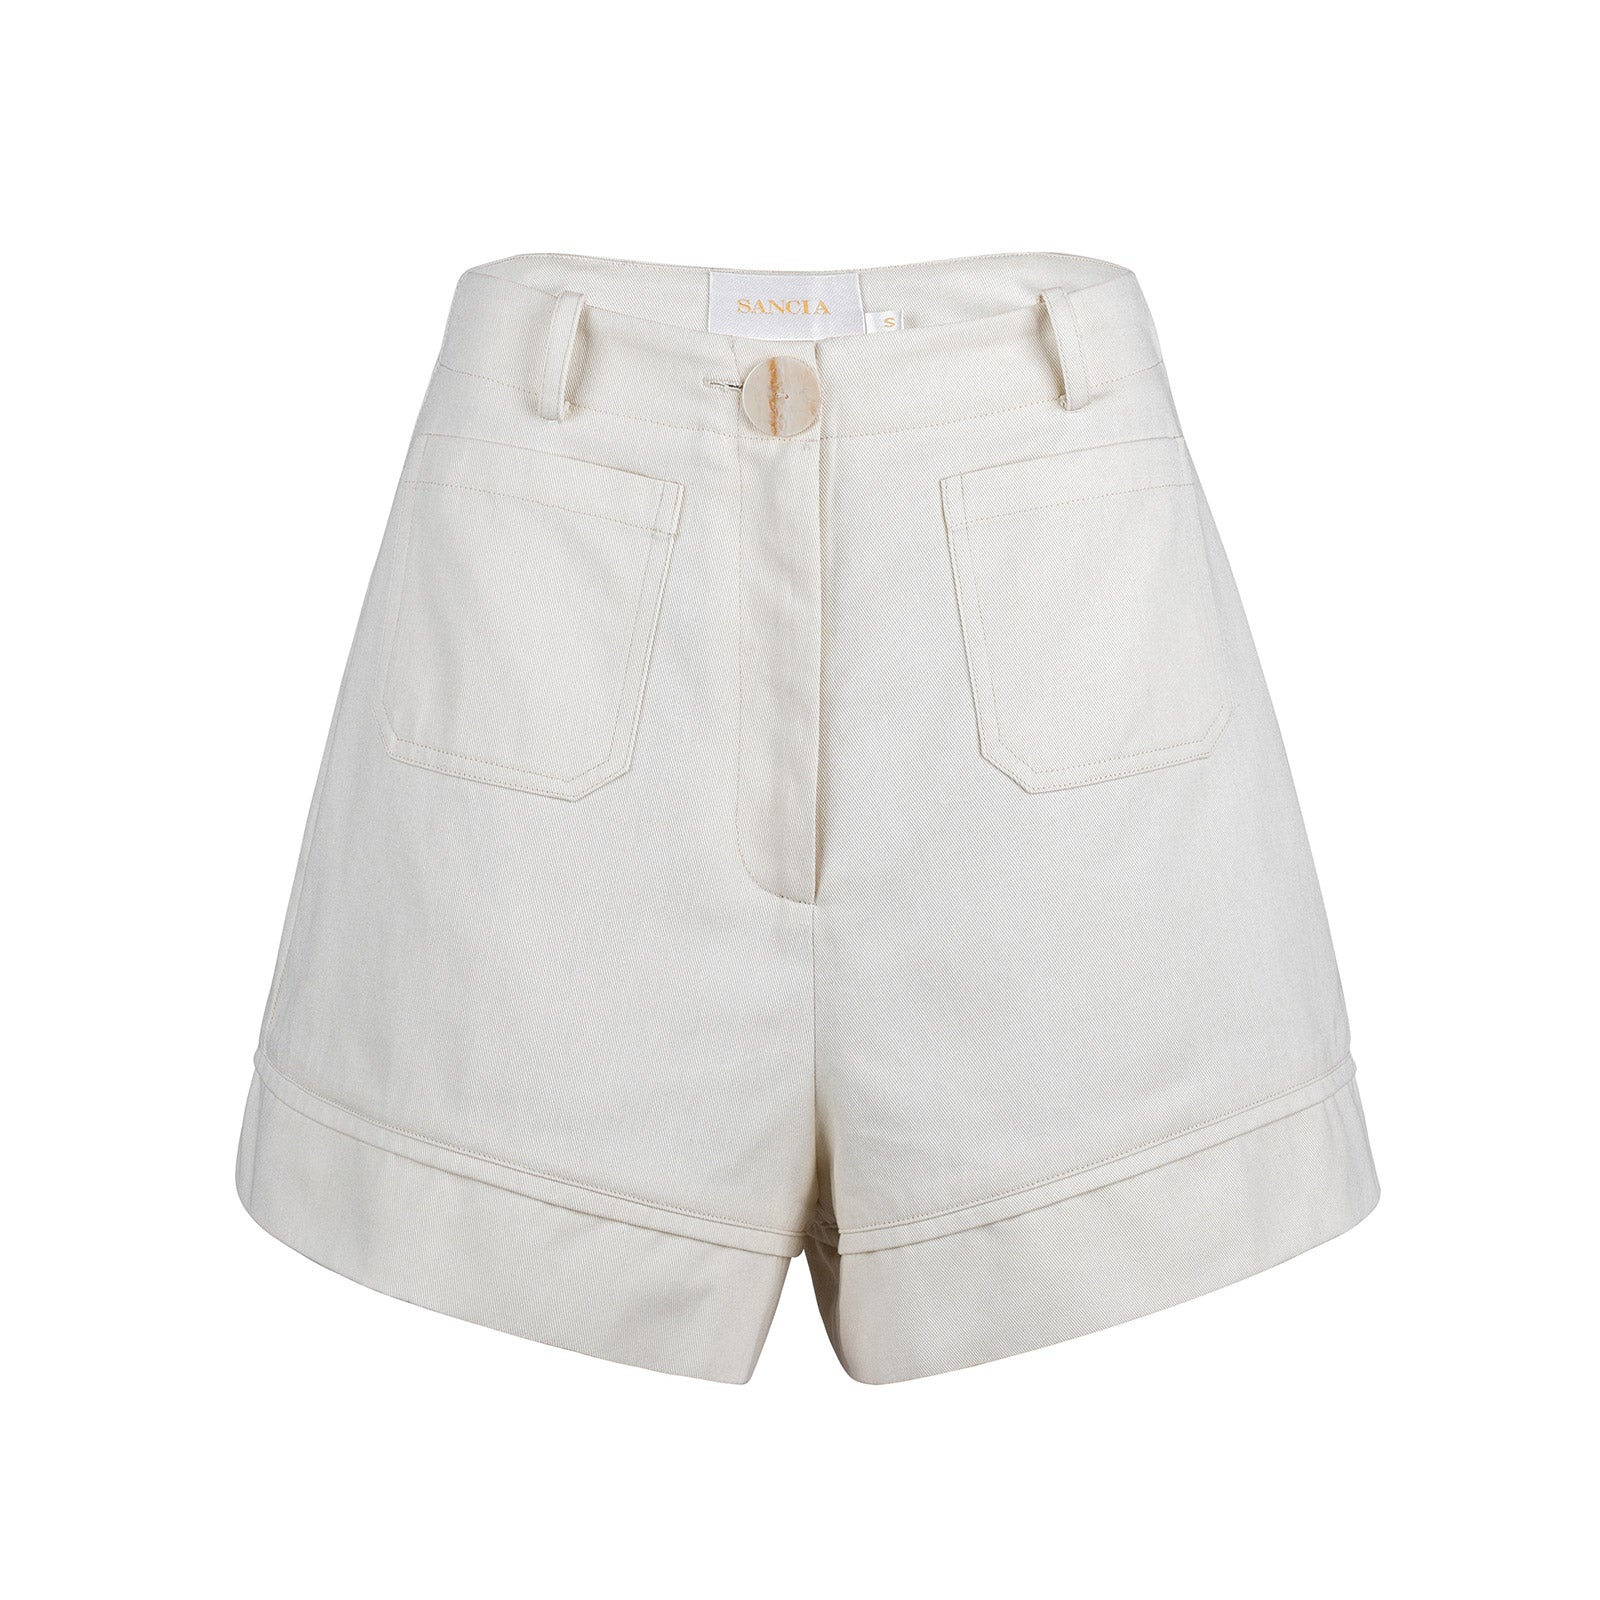 THE MARJAN SHORTS